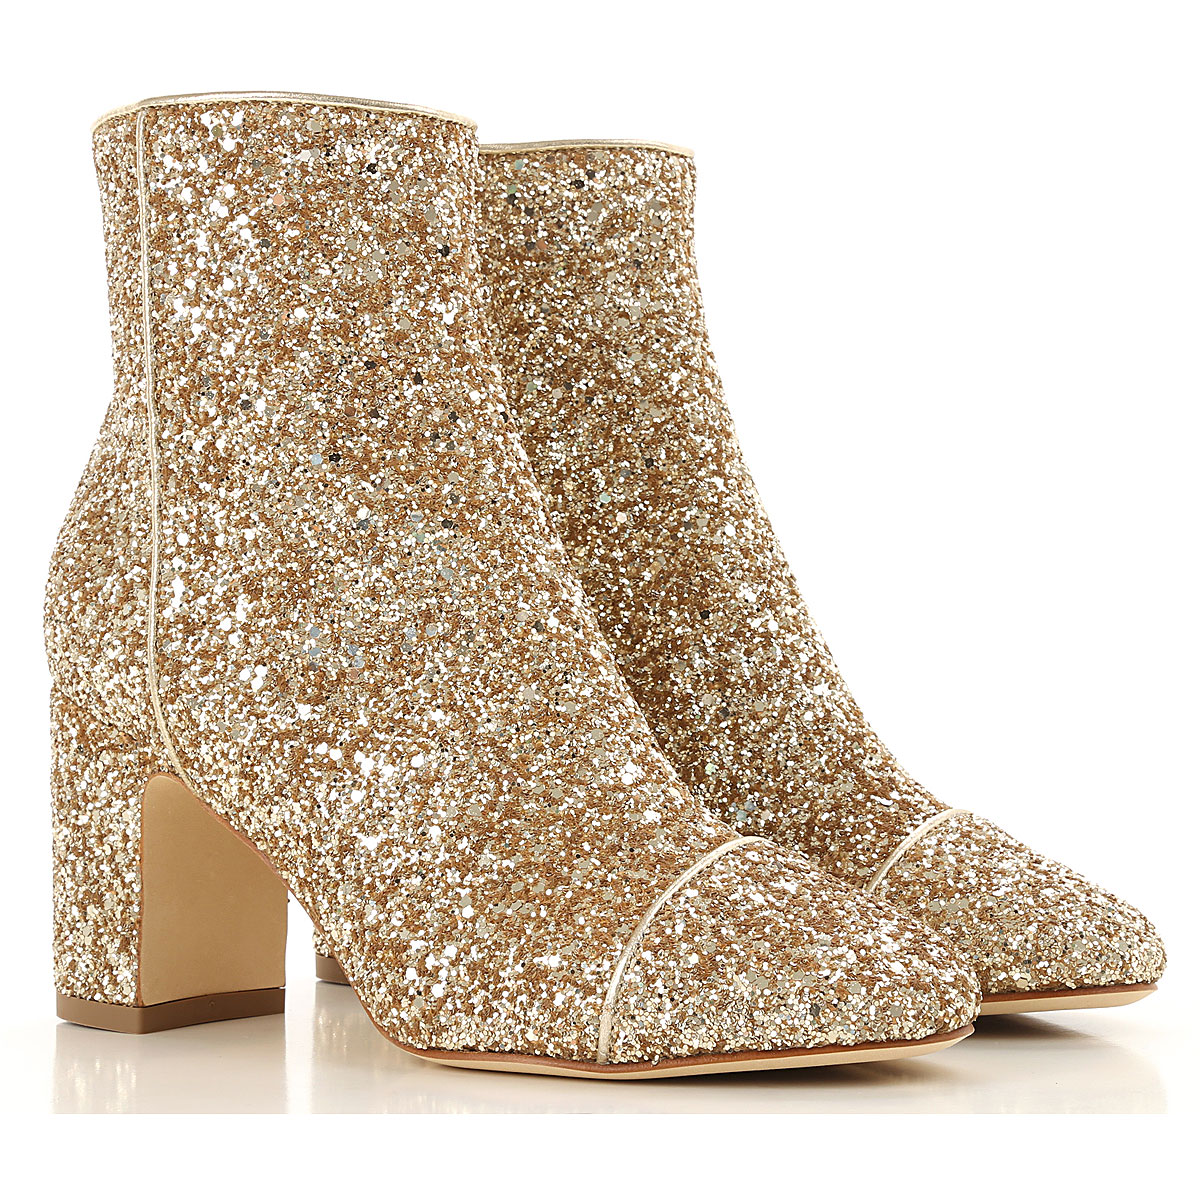 Image of Polly Plume Boots for Women, Booties, Gold, Glitter, 2017, 10 6 7 8